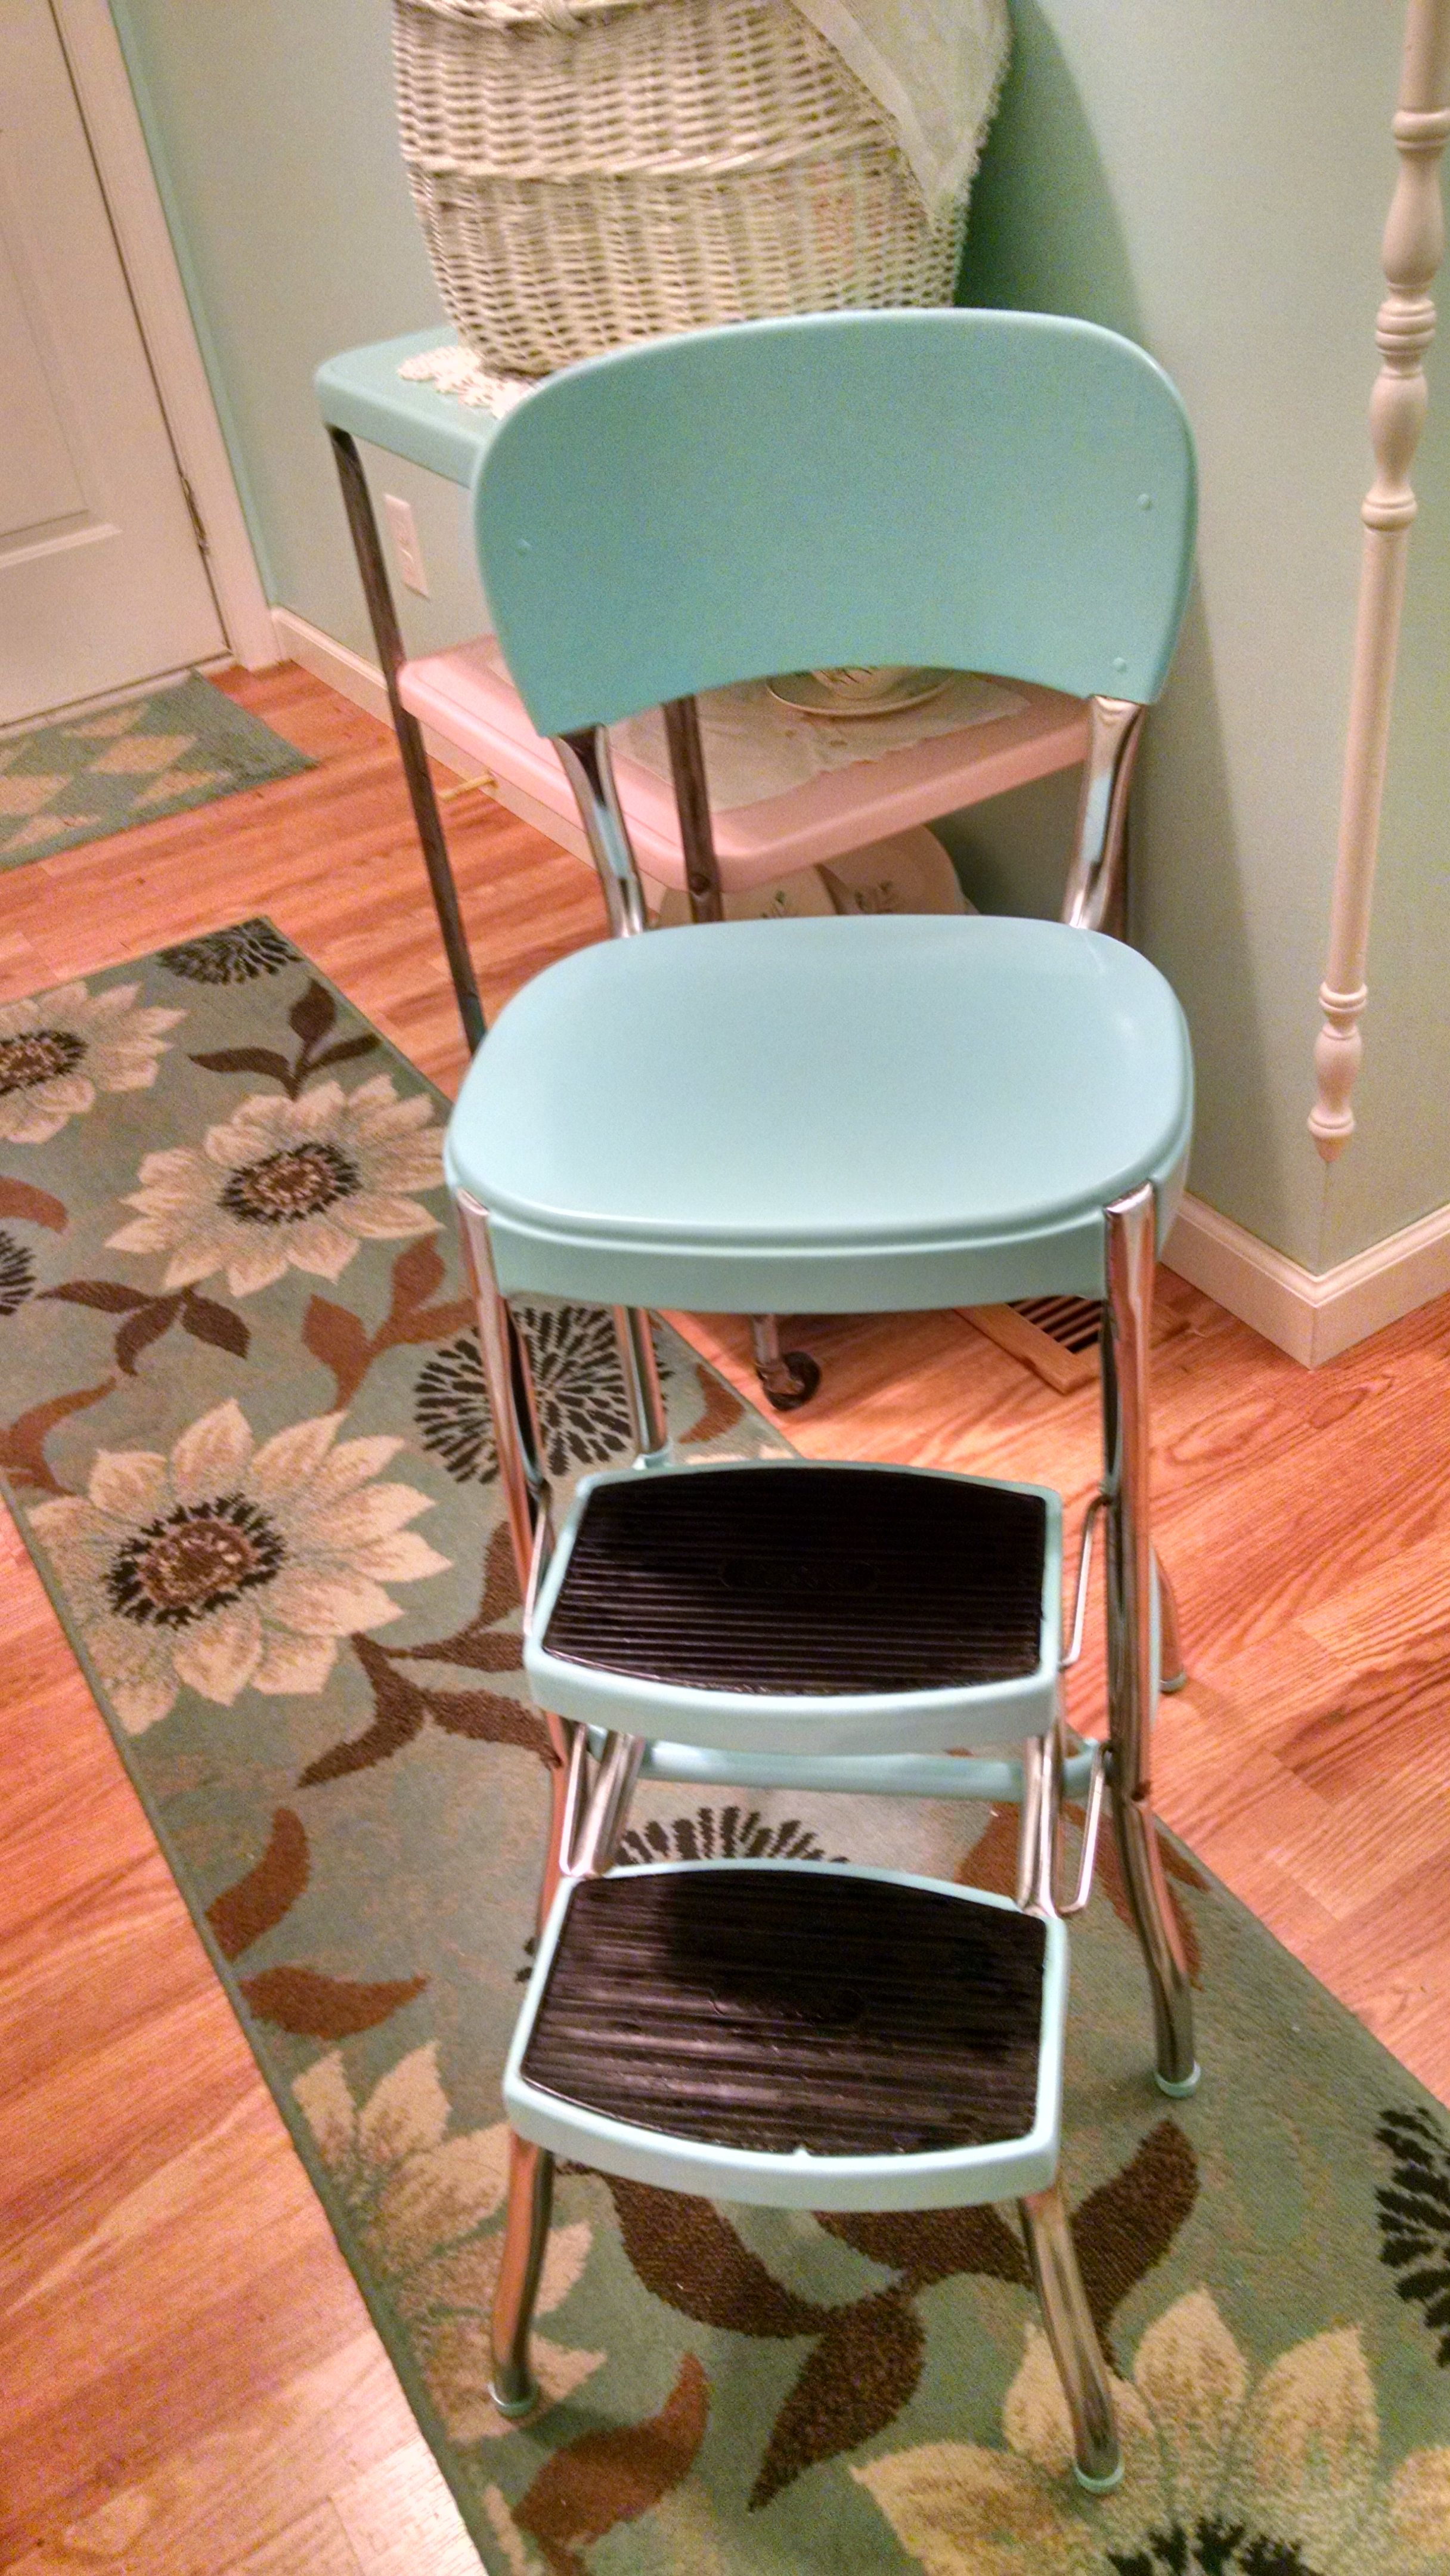 kitchen step stool lights over island old cosco made new again vintage aqua makeover